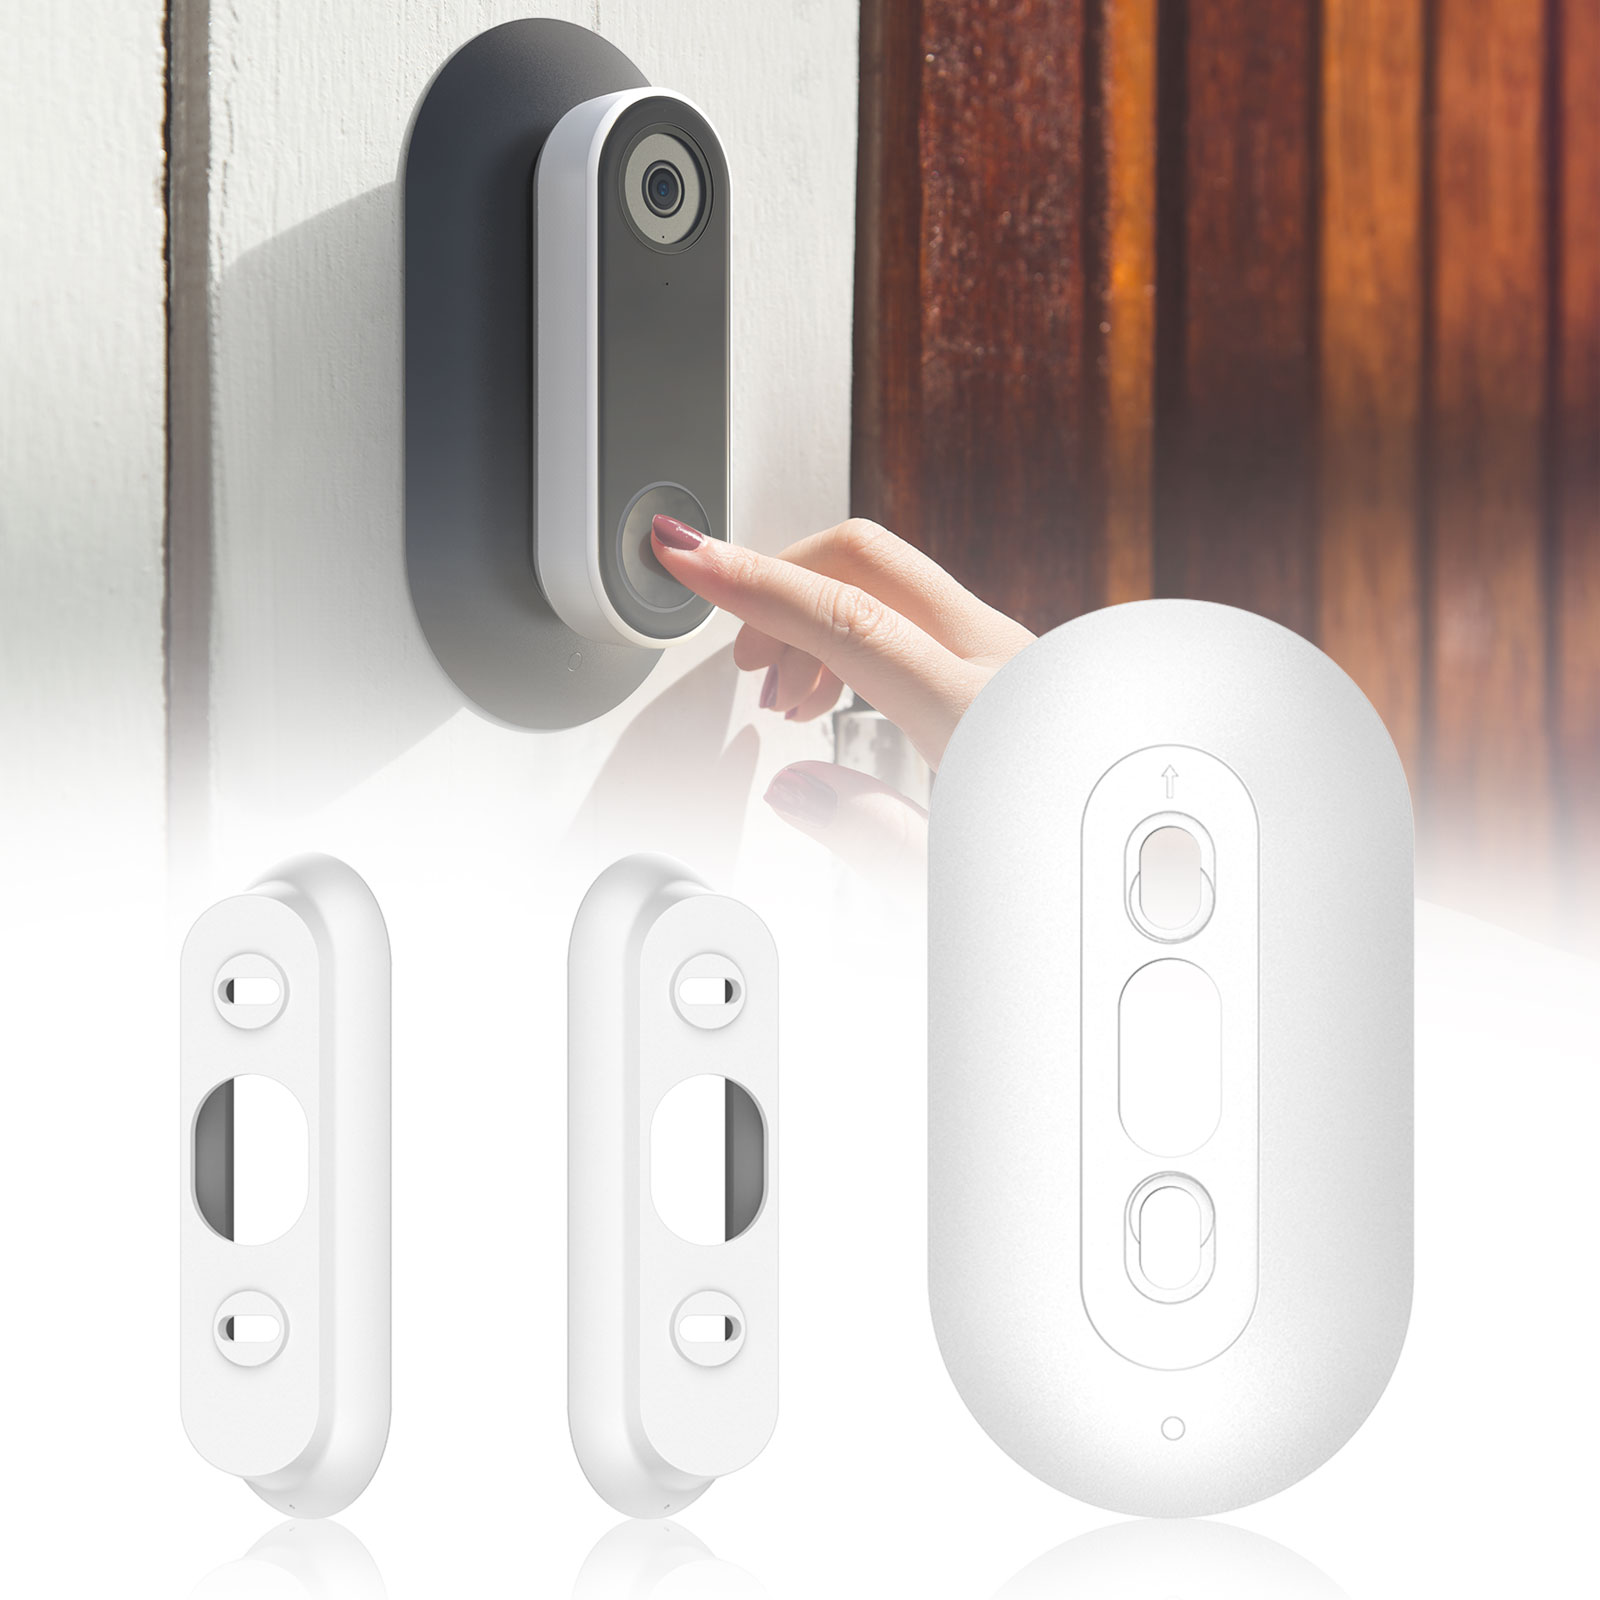 Wall-Mounted-Plate-Case-Cover-for-Nest-Hello-Doorbell-Holder-w-Adjustable-Wedge thumbnail 11